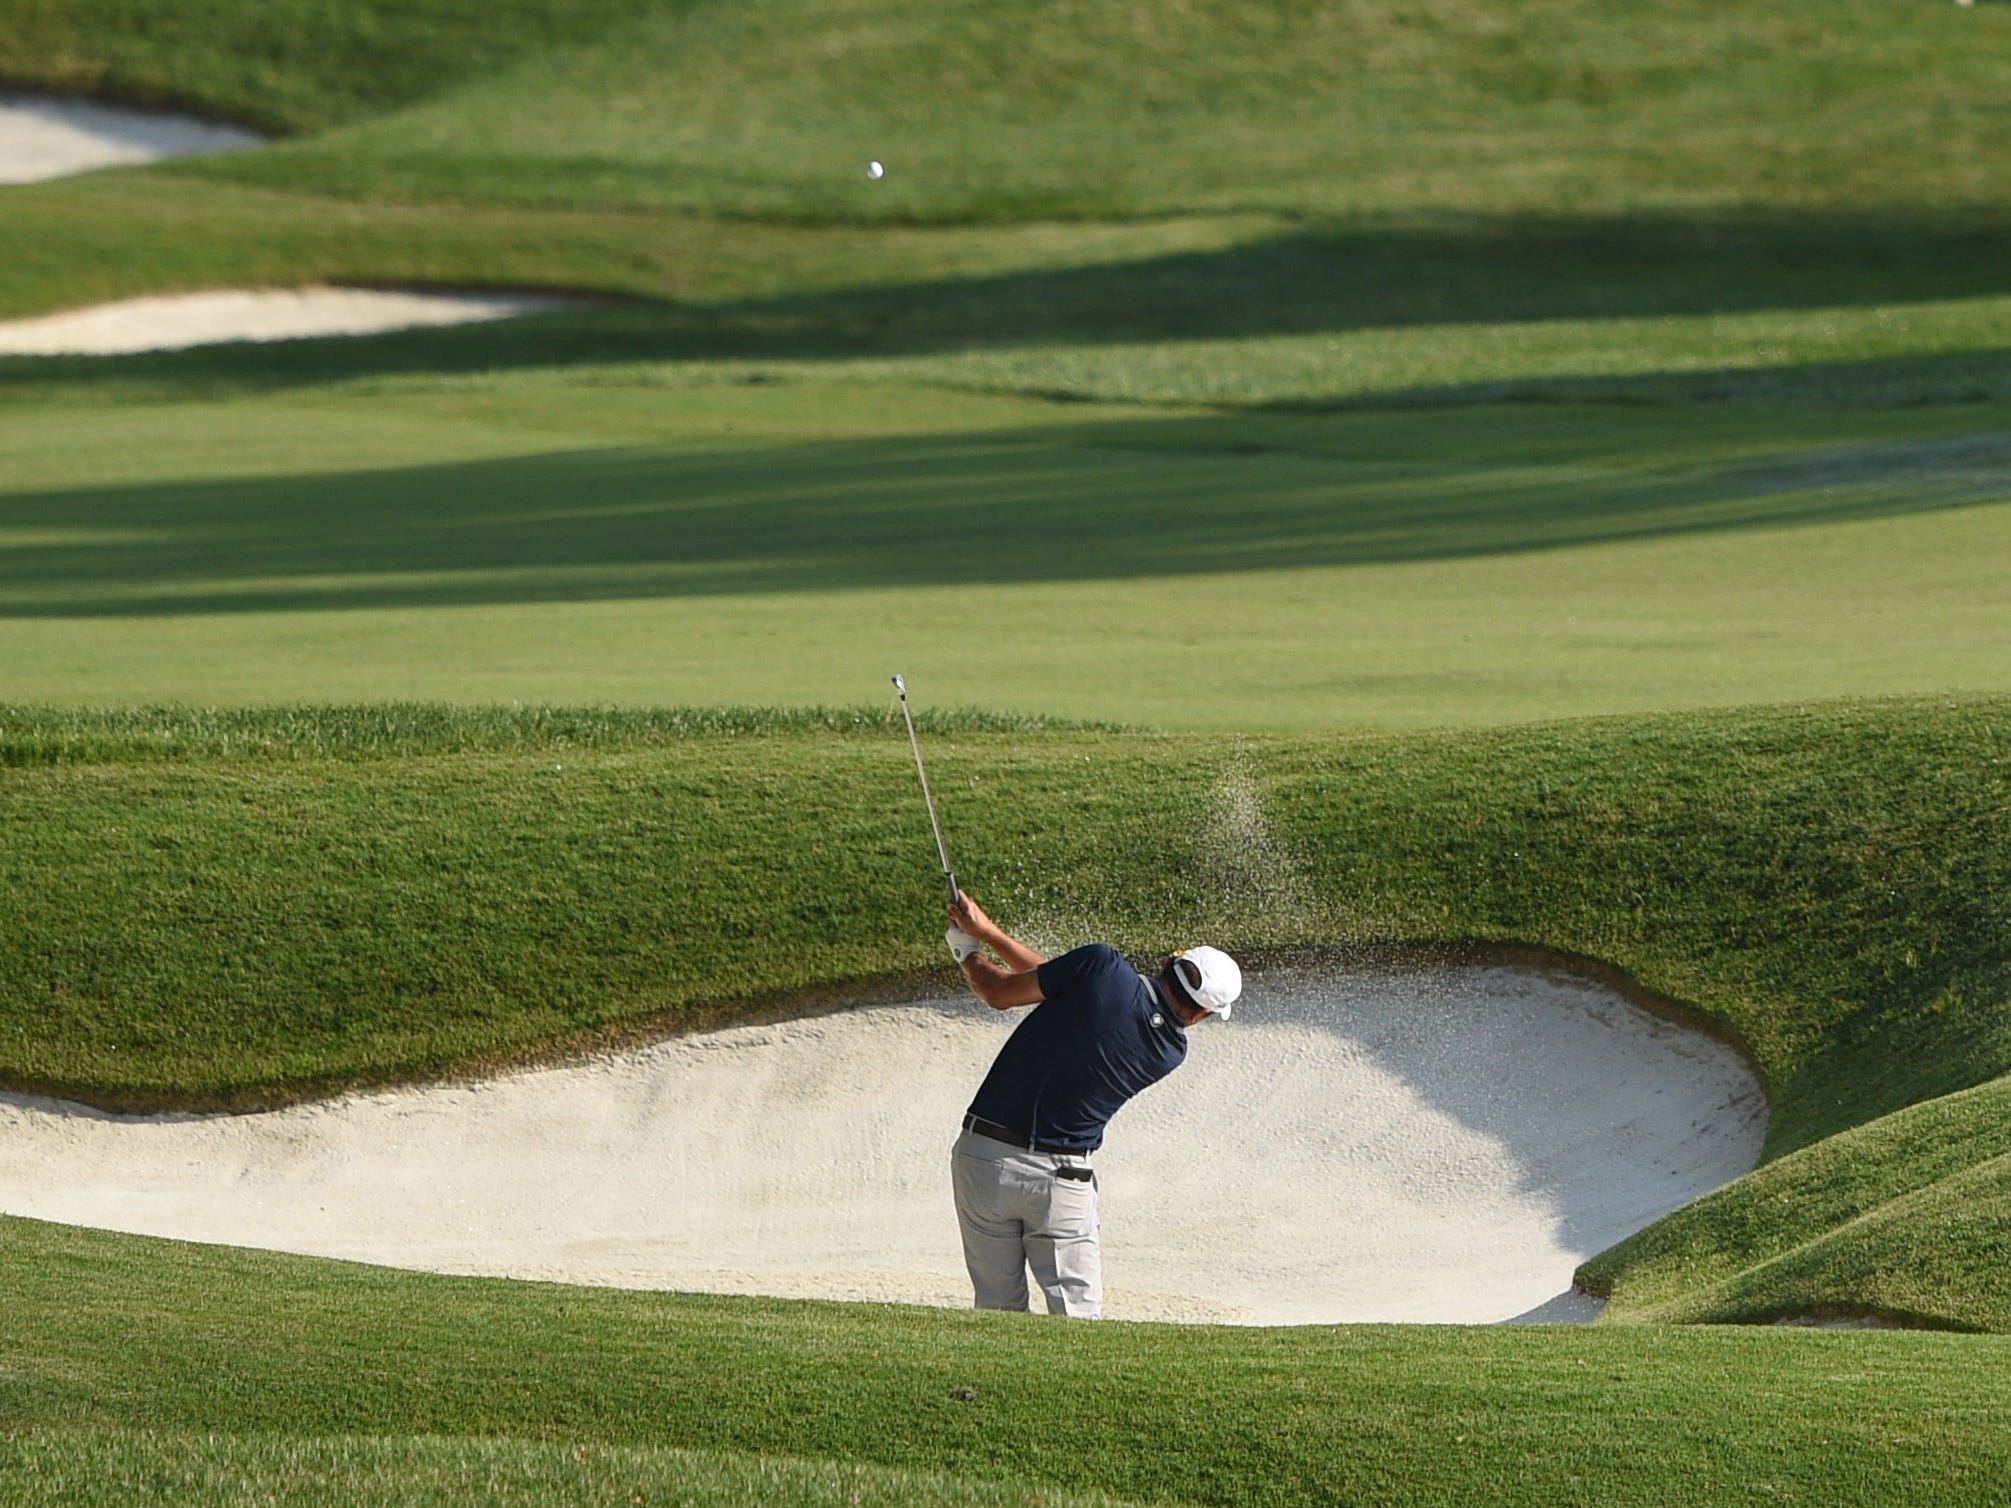 Johan Kok hits out of a bunker on the 18th hole during the second round.